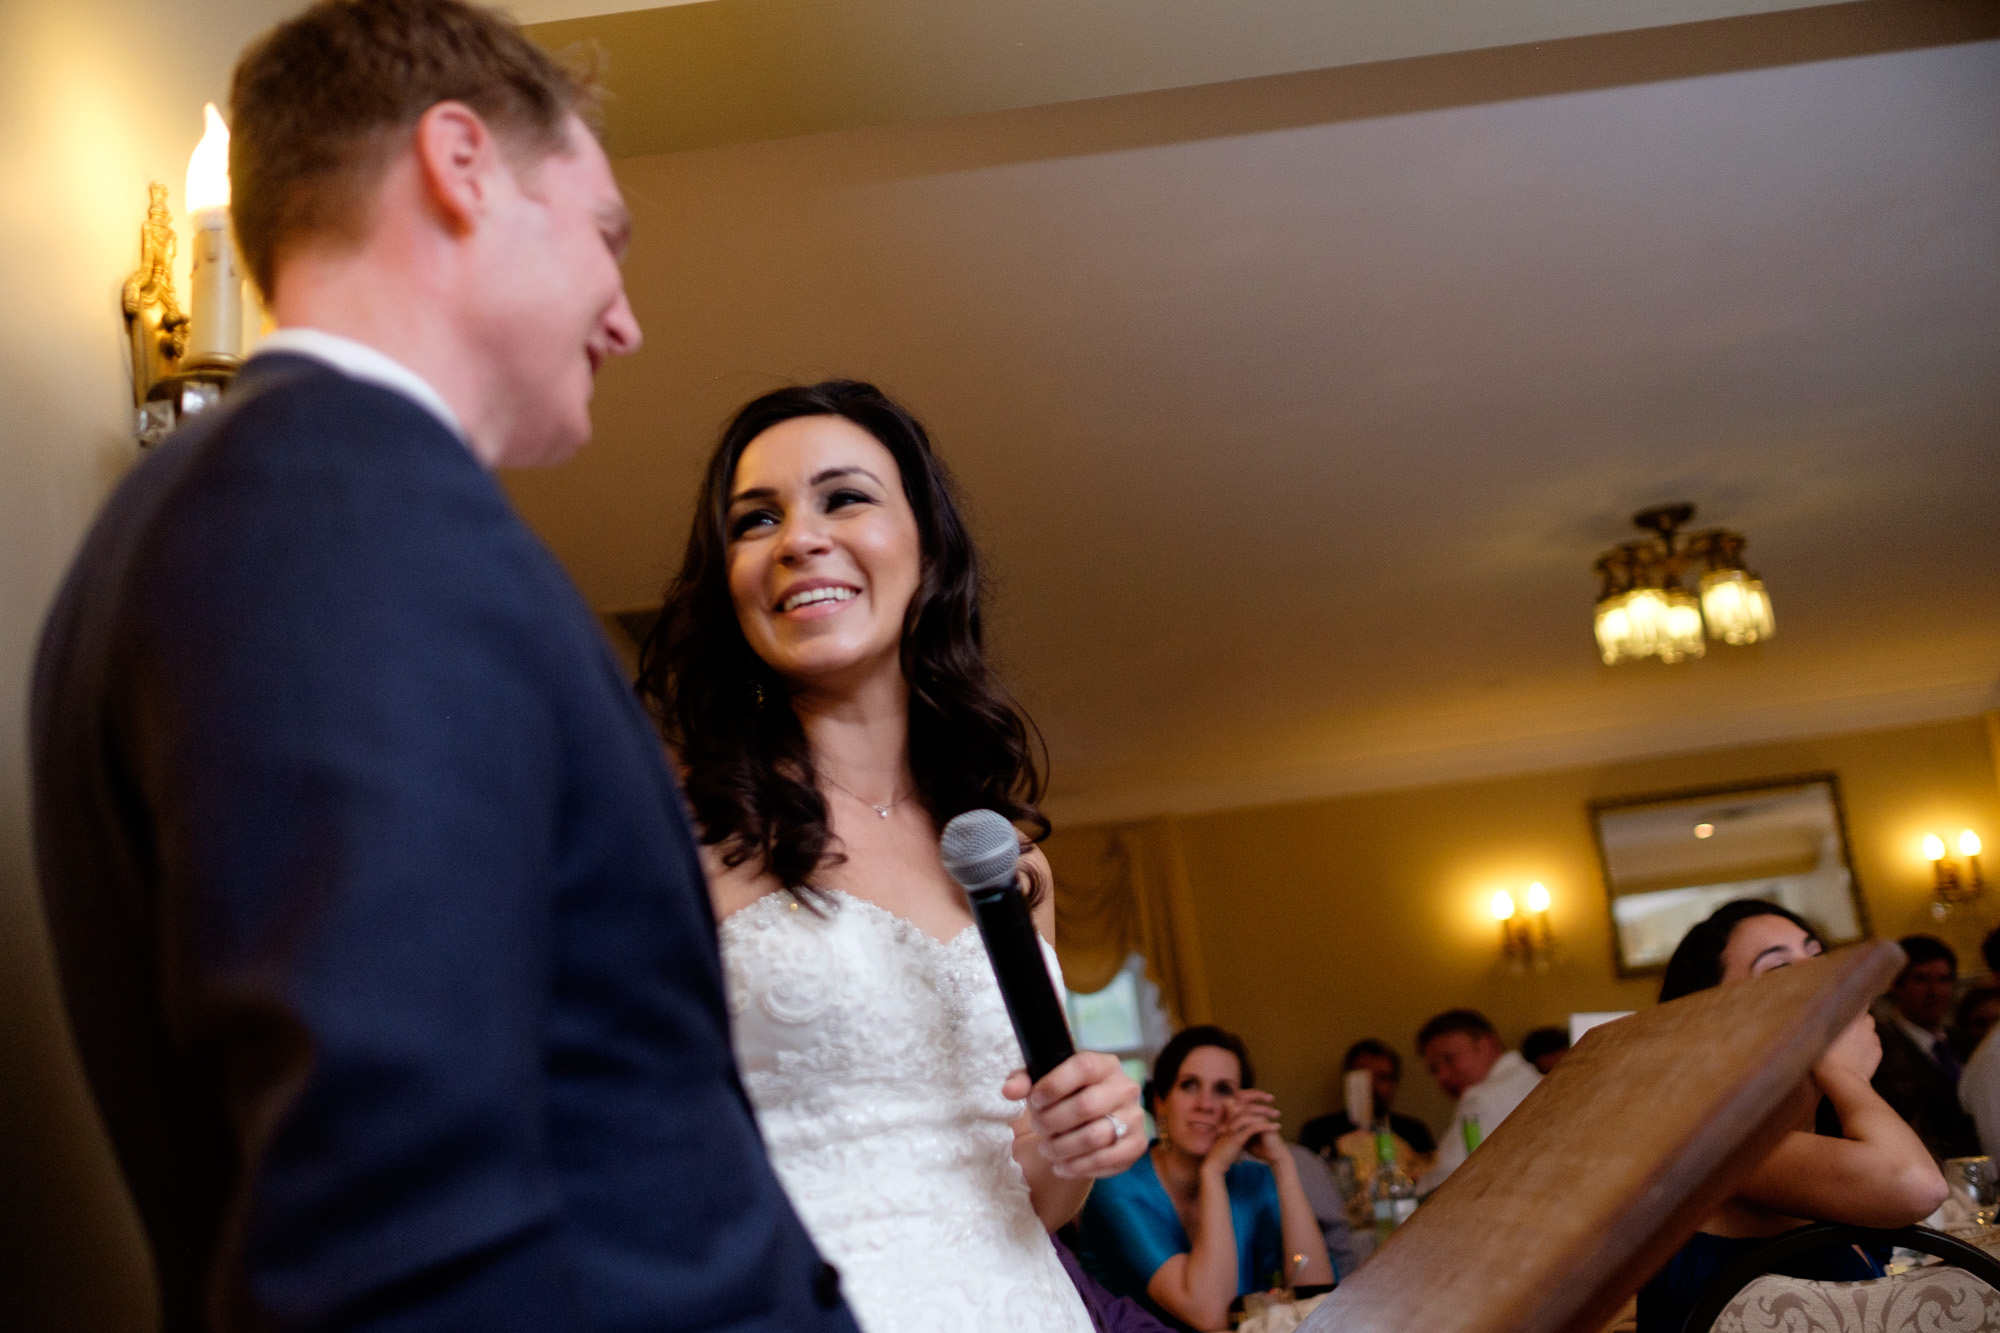 Laura has a laugh while giving her speech at her wedding reception at the Paletta  Mansion.